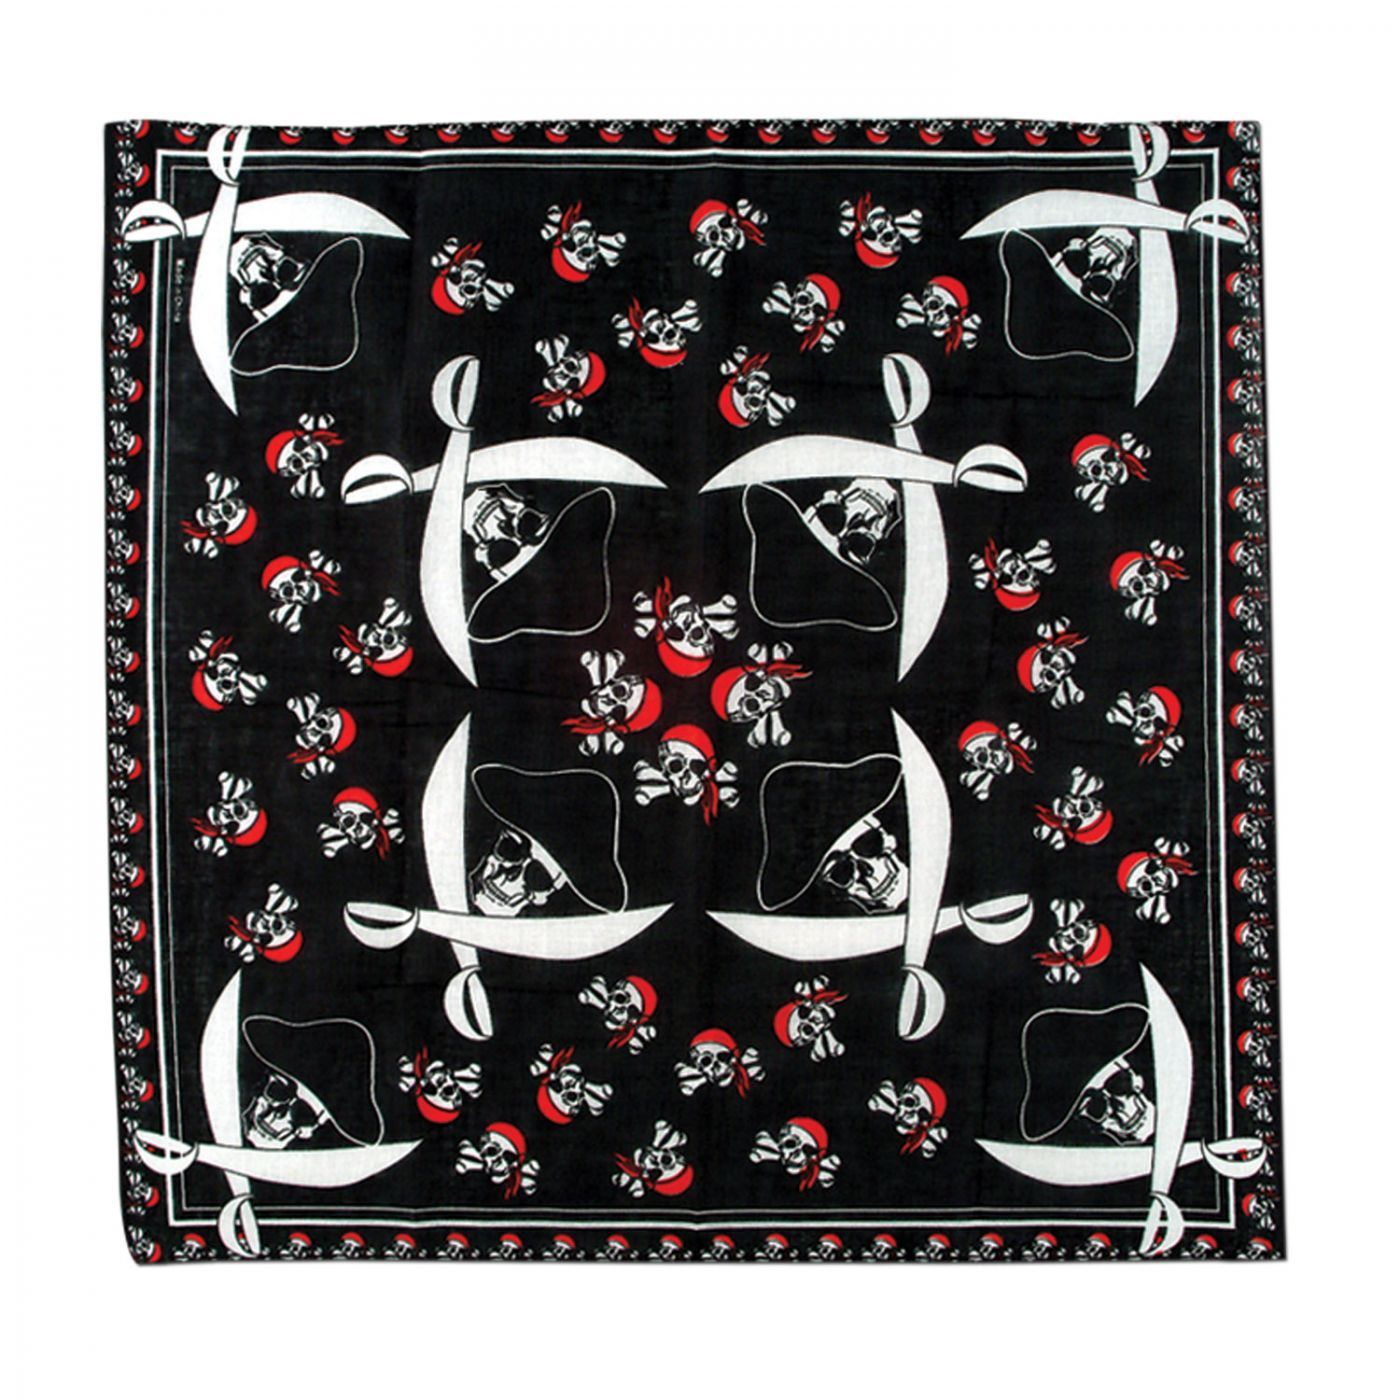 Pirate Bandana image